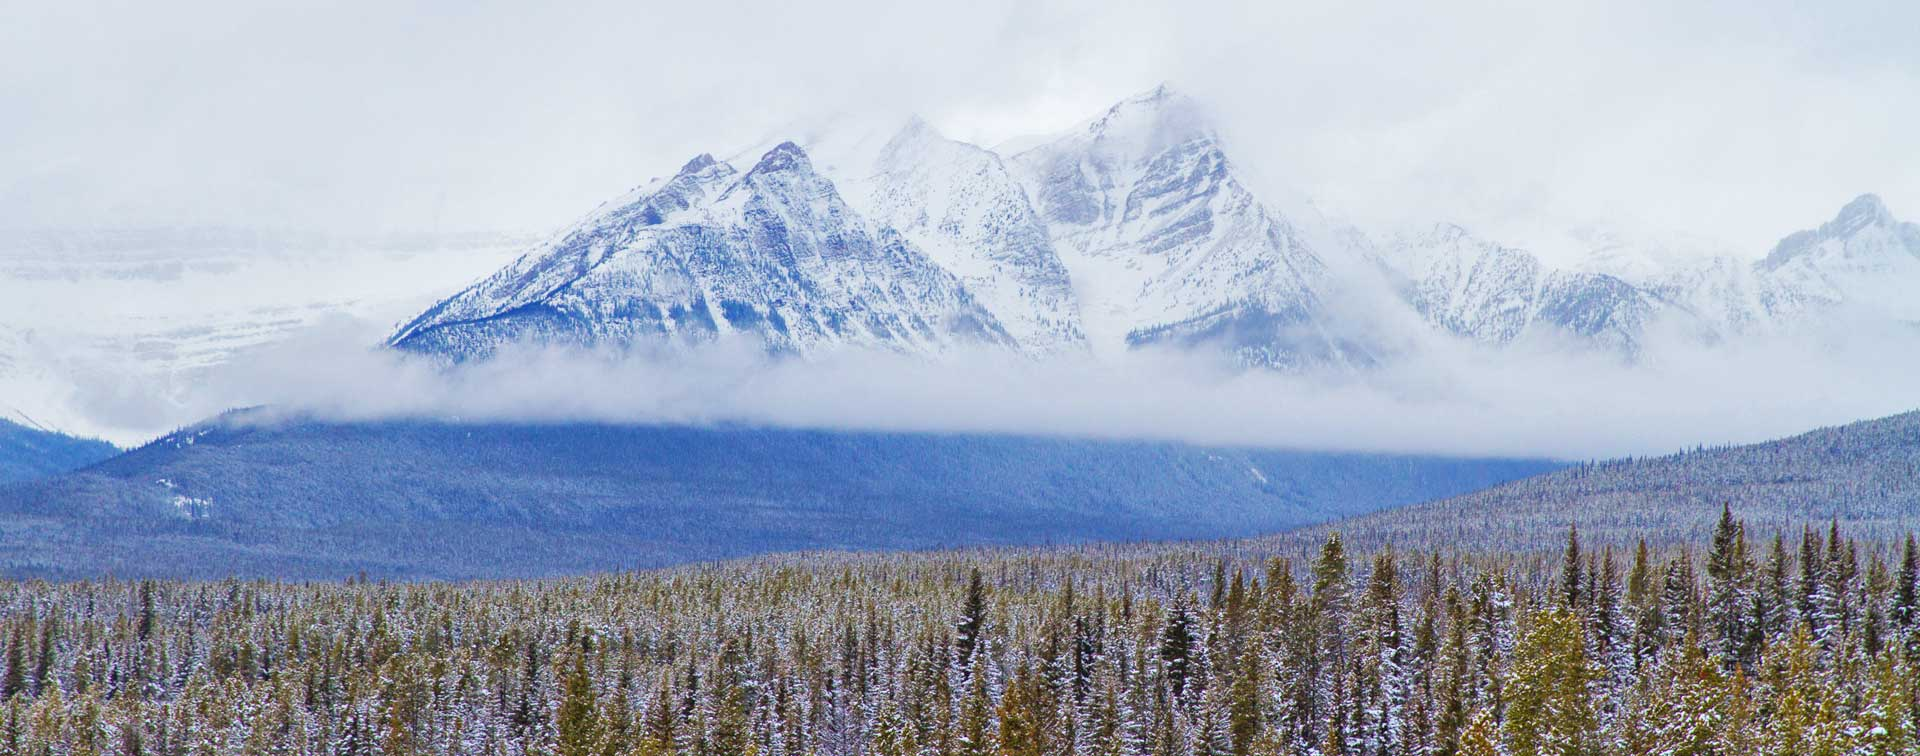 Banff-Mountains_1920x756.jpg